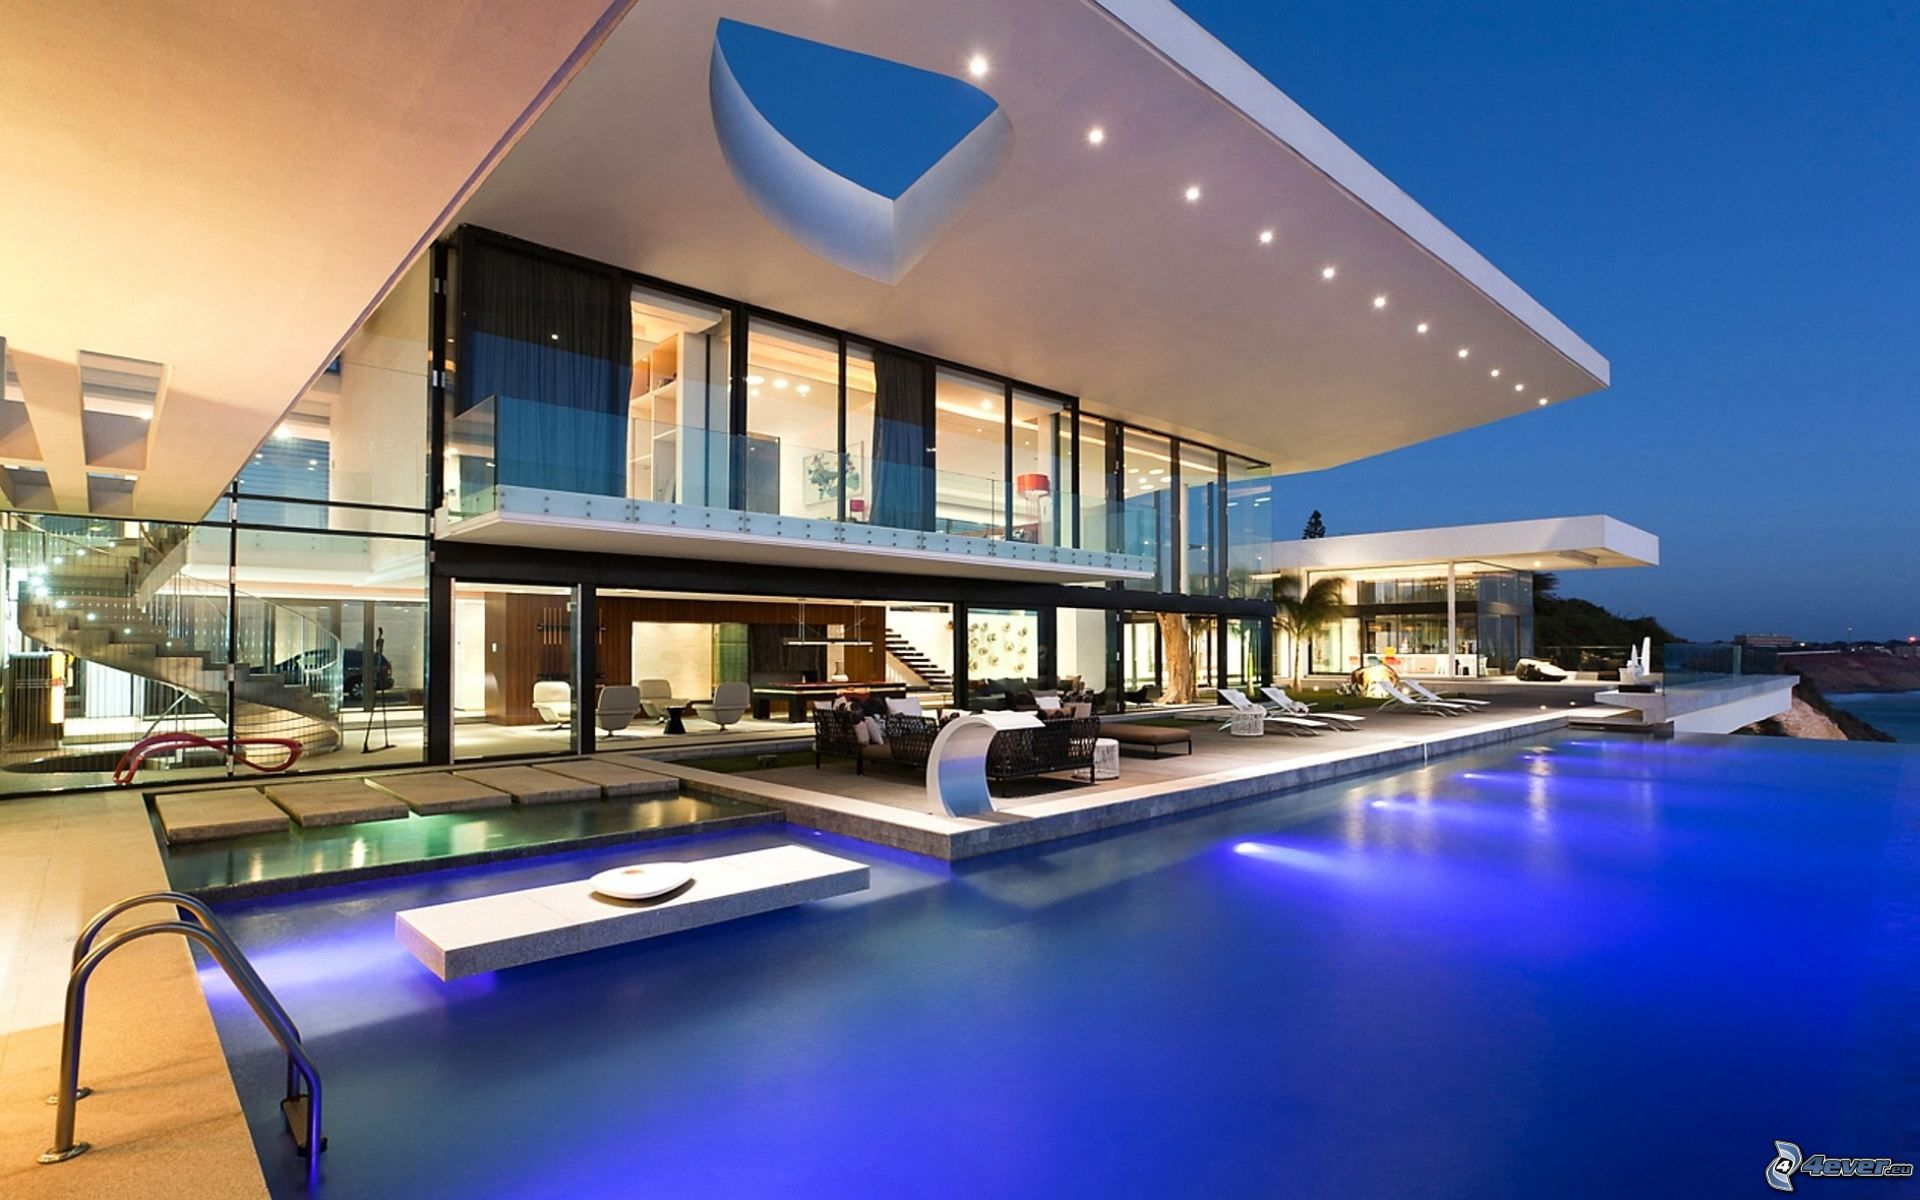 dream house interior. Luxury Build My Dream House With Pool Easily  HomesFeed